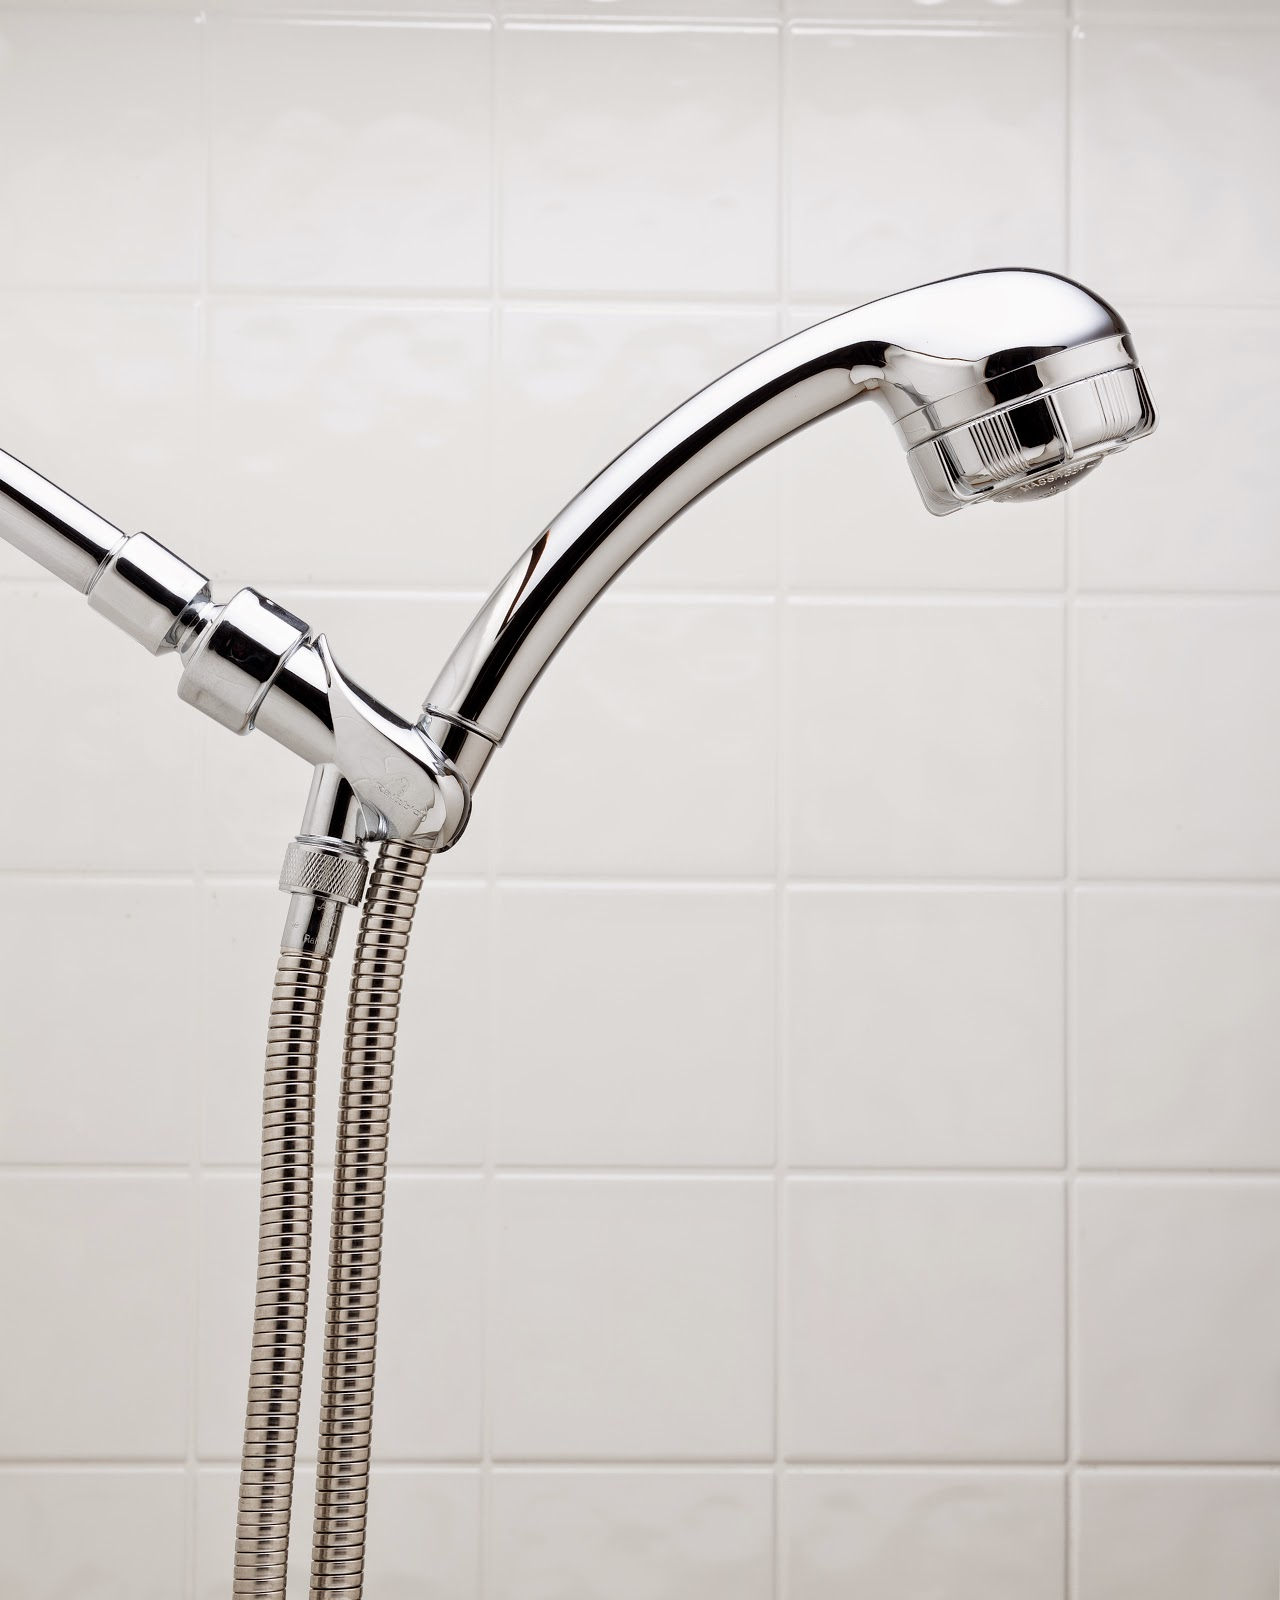 Best Shower Head for Low Water Pressure Fire Hydrant Spa Series: A ...